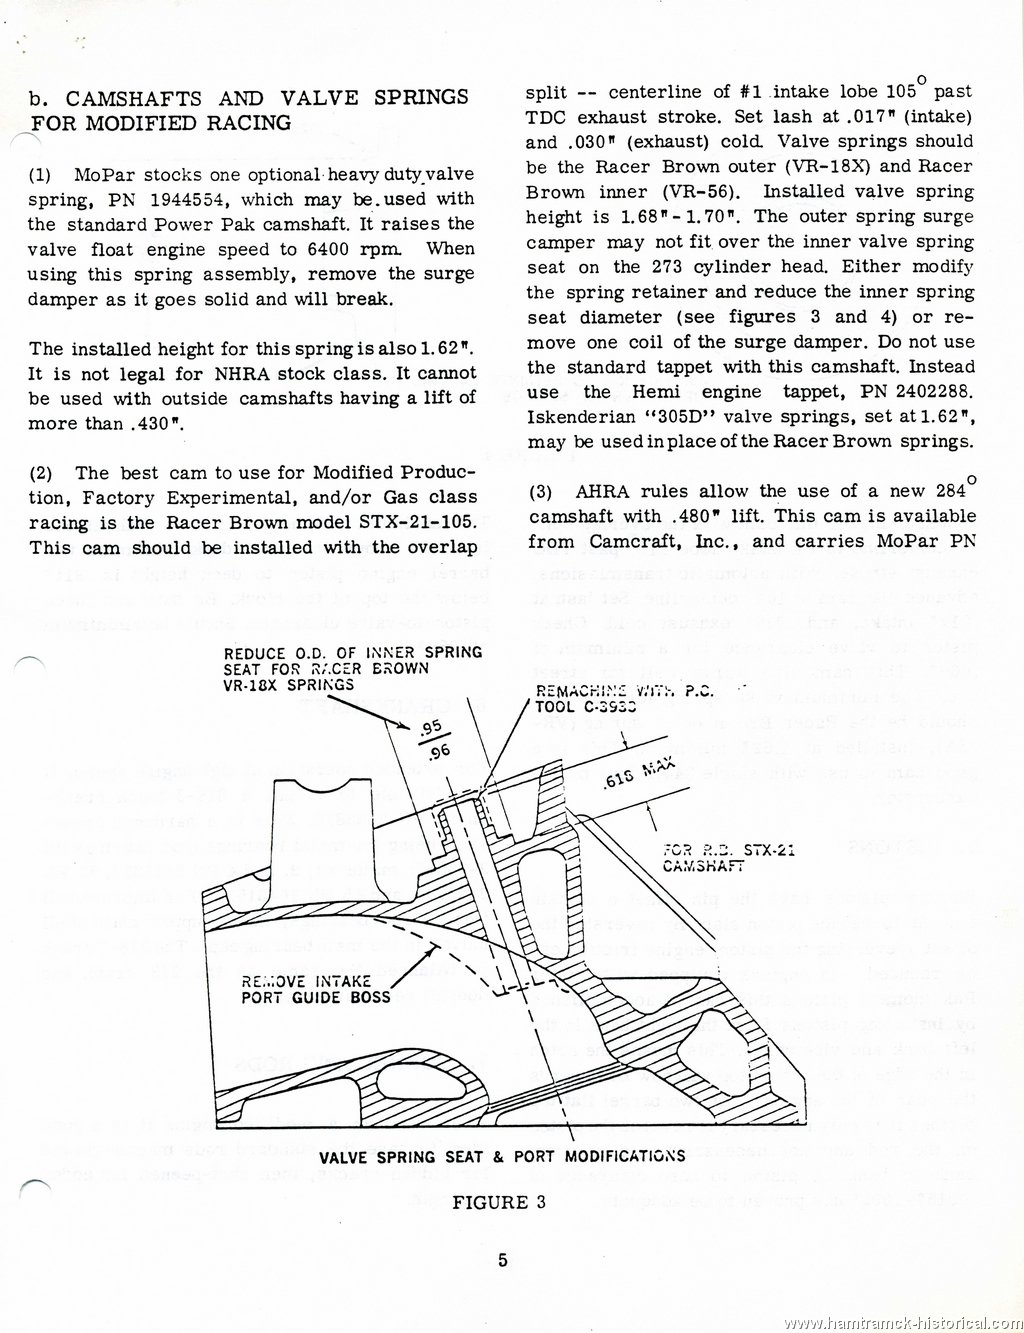 The 1970 Hamtramck Registry - 273-318-340 Engine Tune-Up Tips